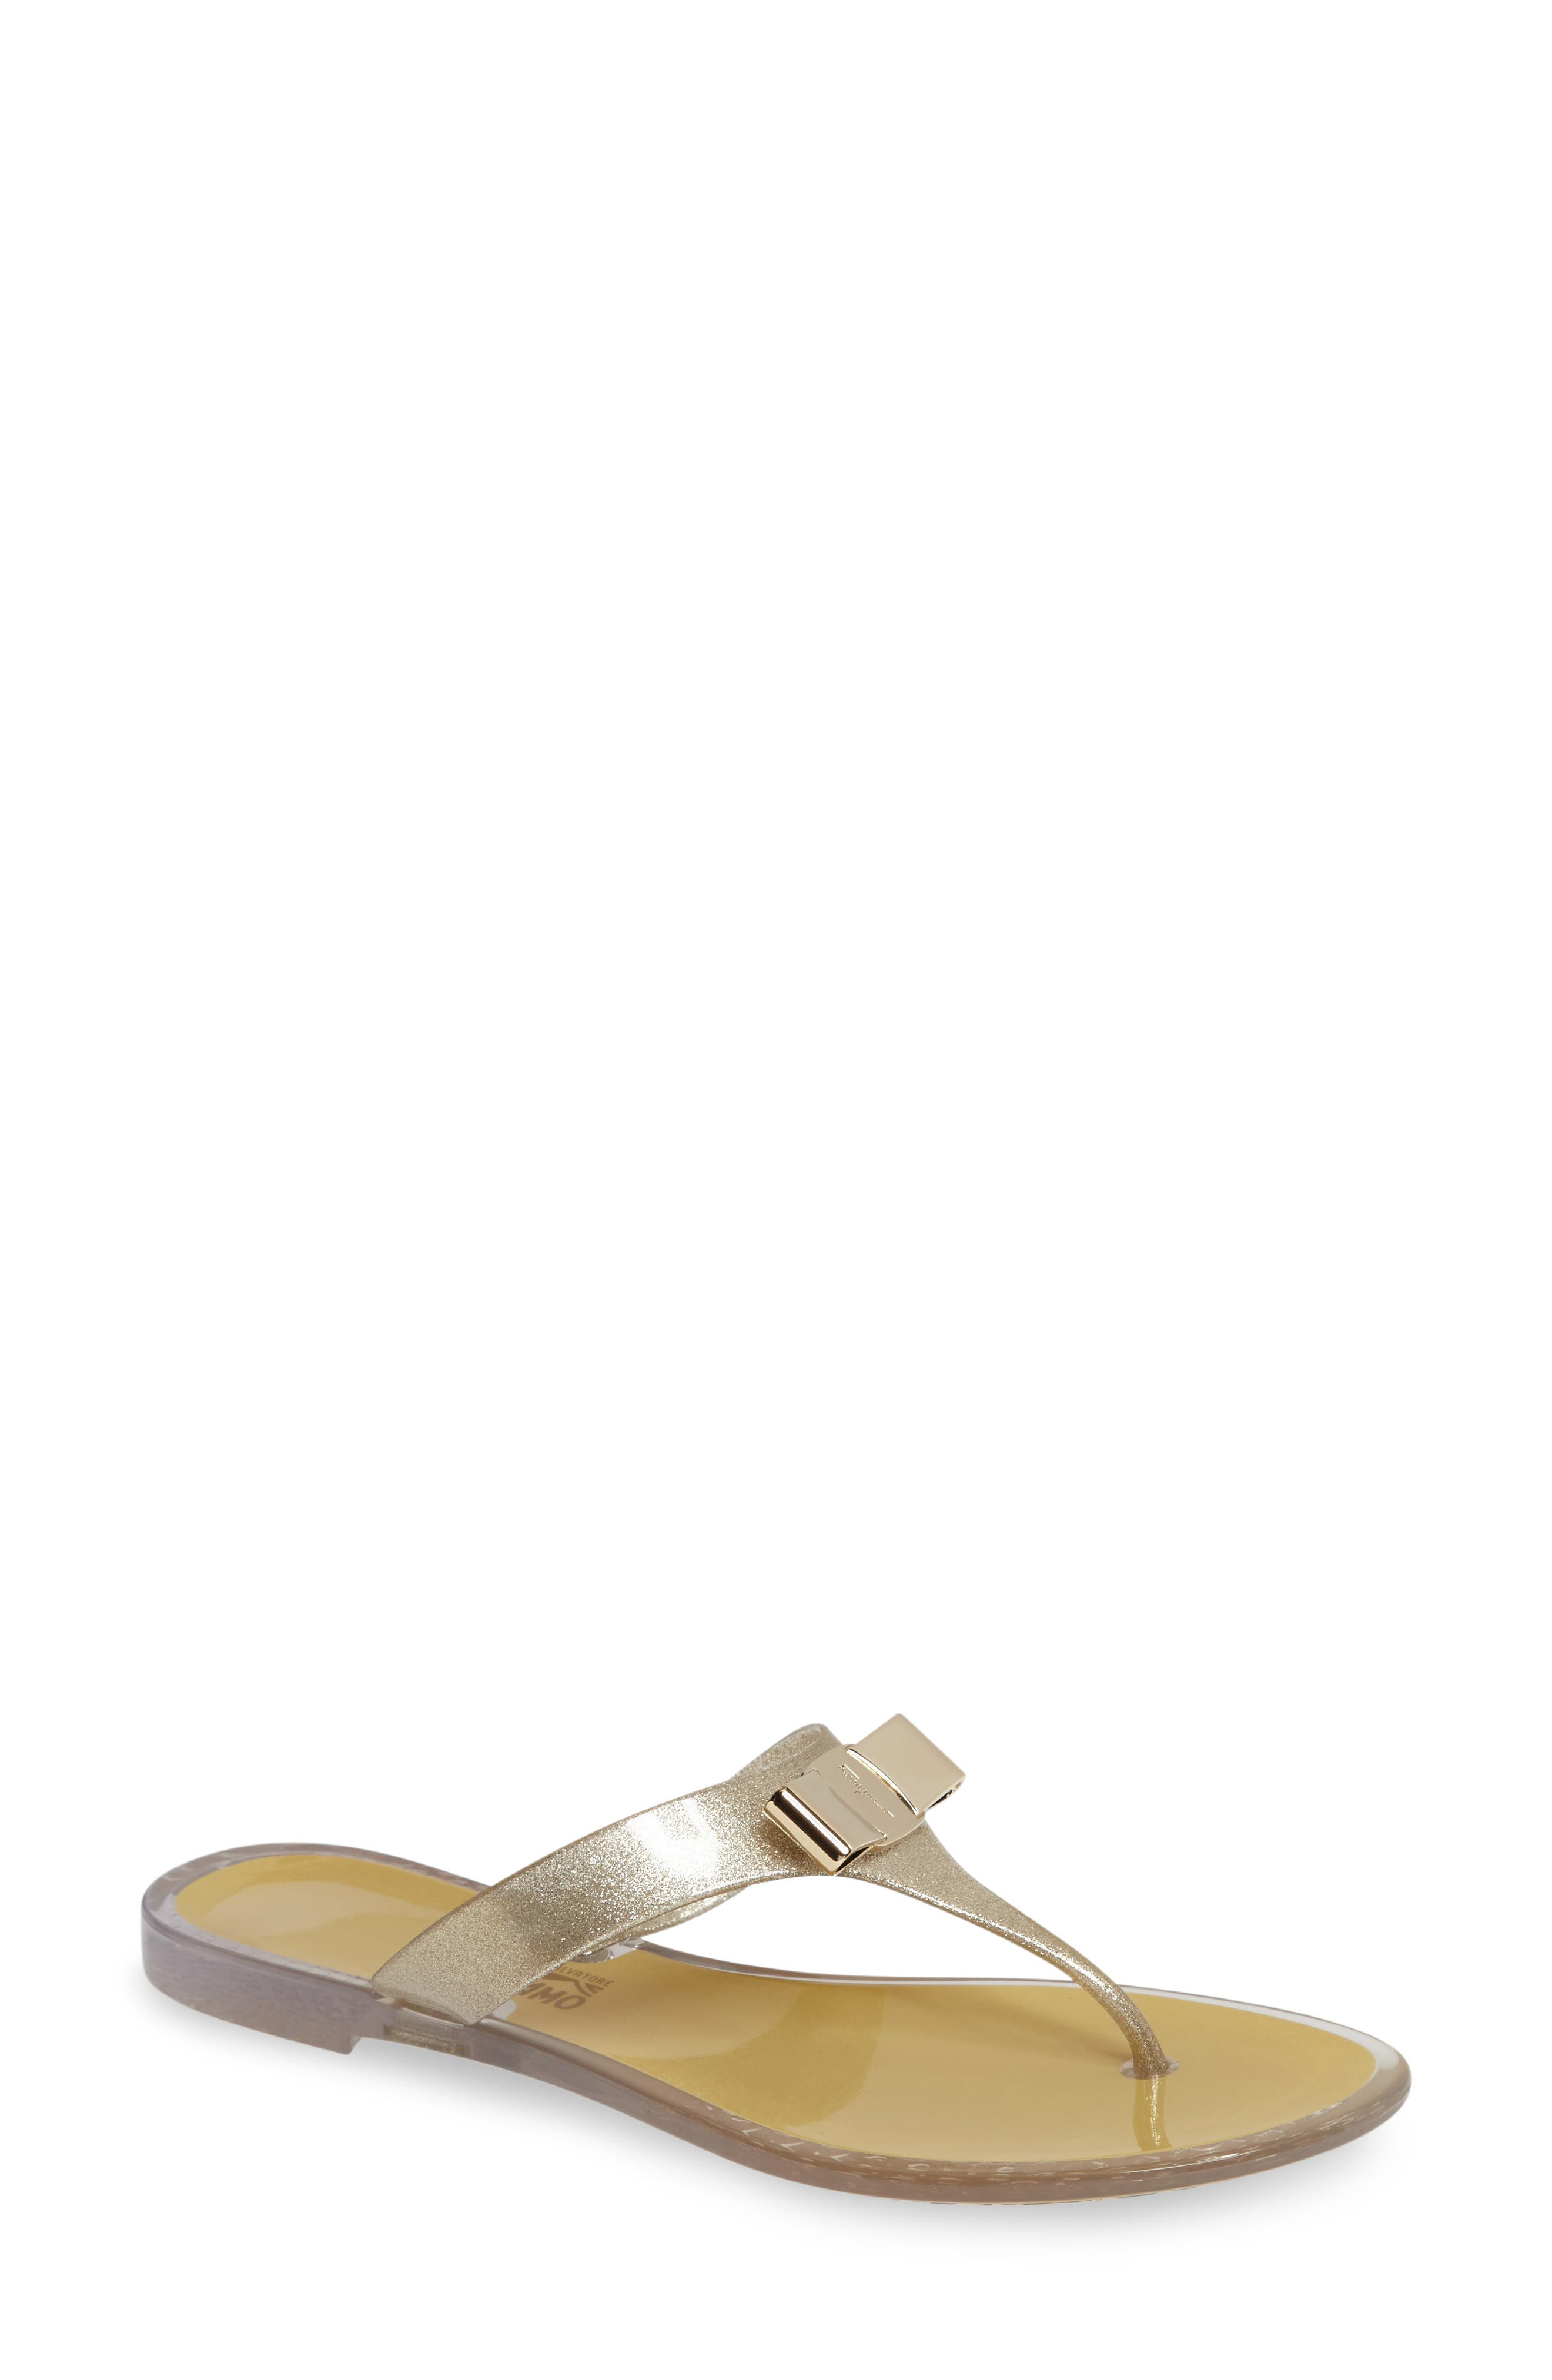 Alternate Image 1 Selected - Salvatore Ferragamo Jelly Flat Bow Sandal (Women)